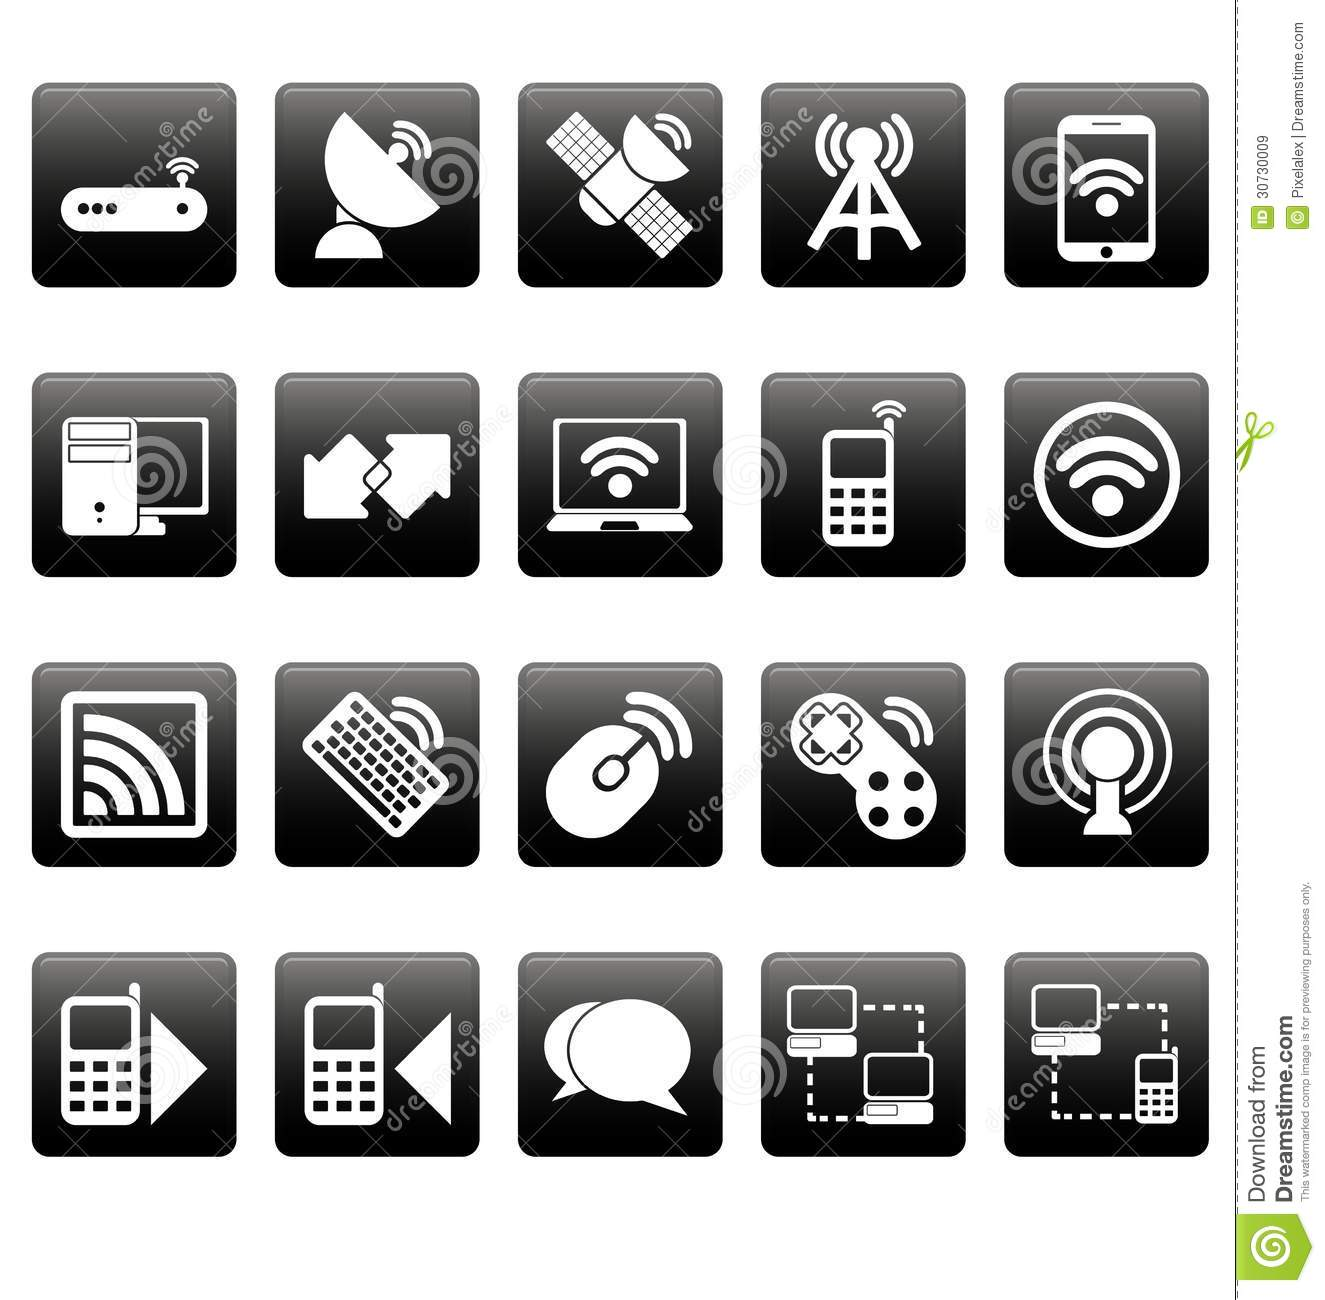 9 Black And White Network Icon Images